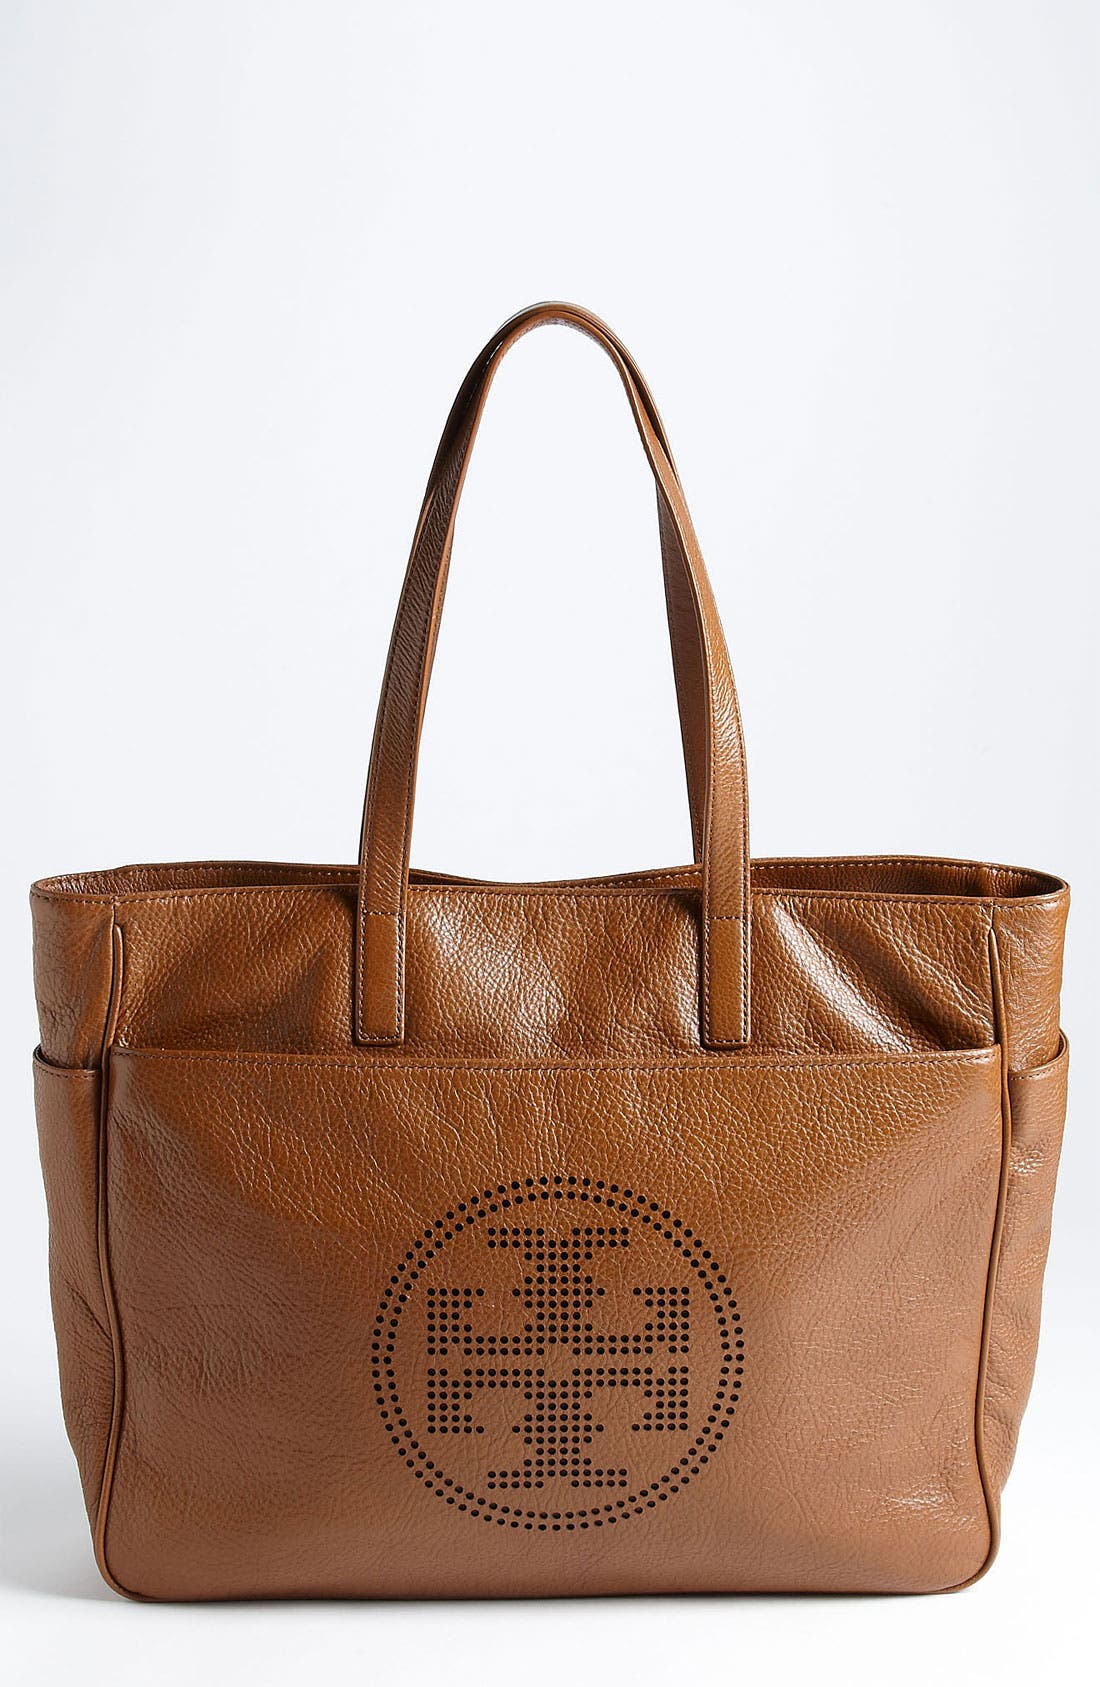 Main Image - Tory Burch Perforated Logo Classic Leather Tote